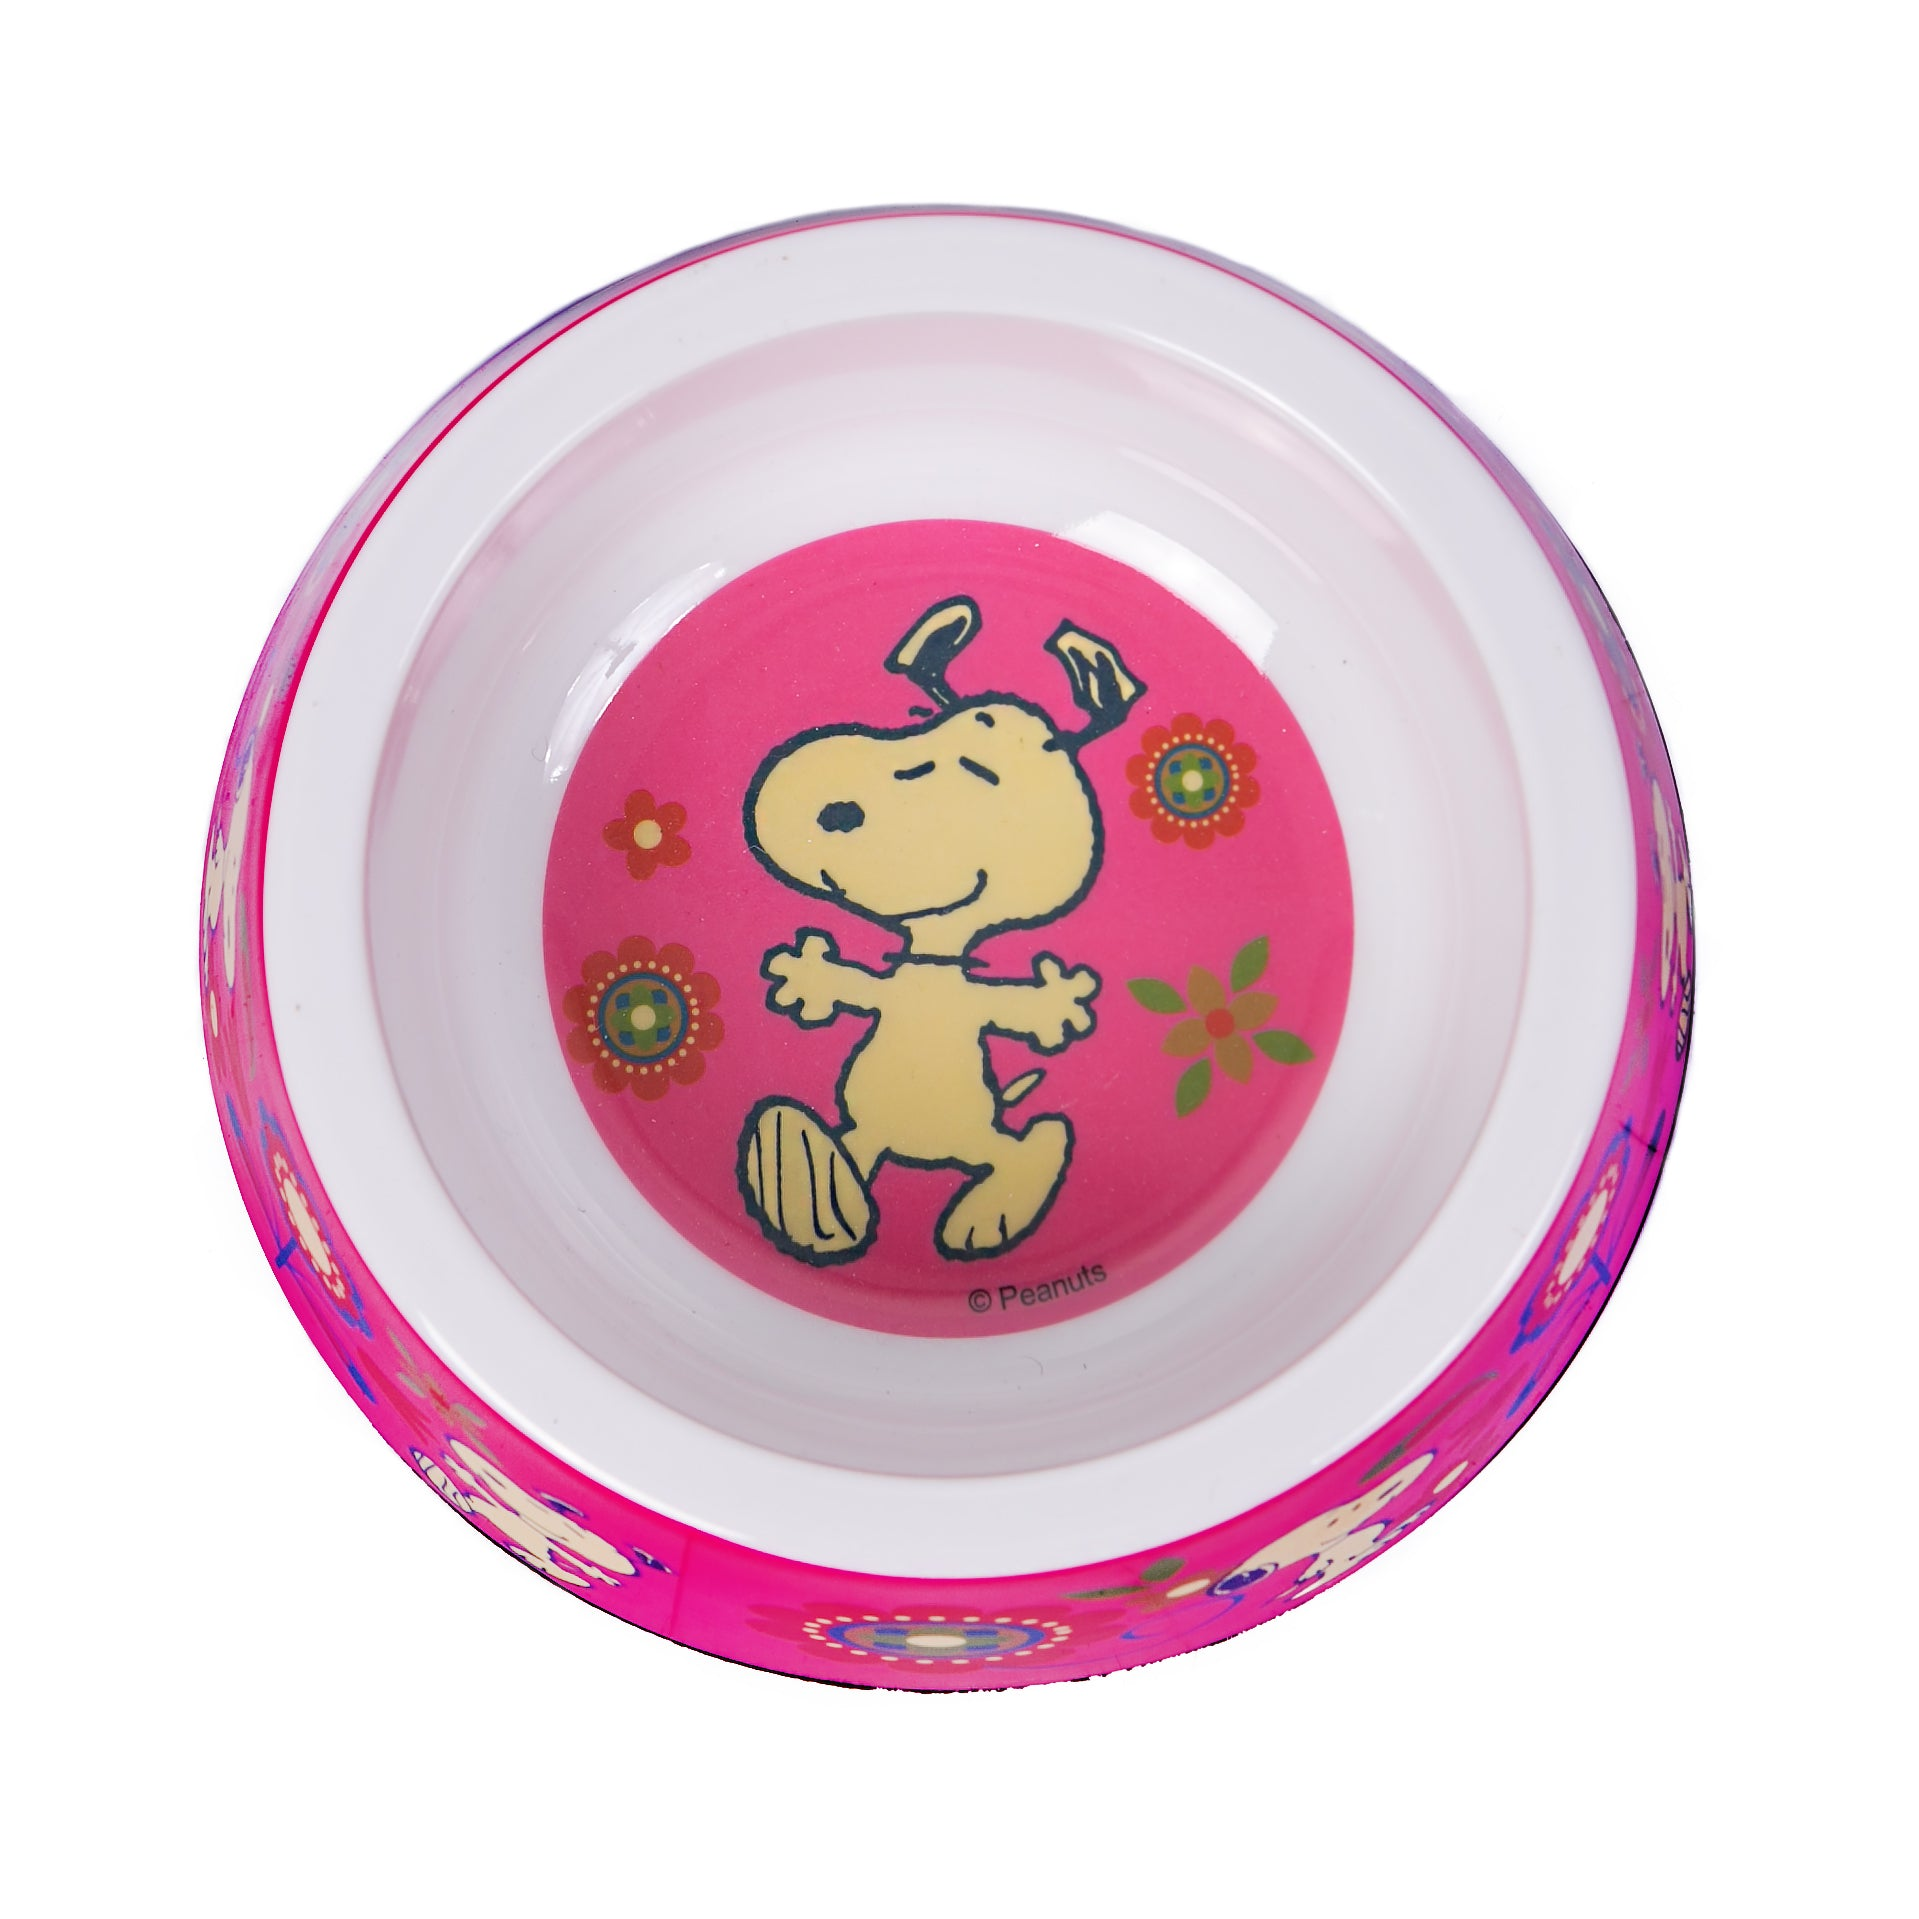 BOWL MELAMINE SNOOPY PINK FLOWER